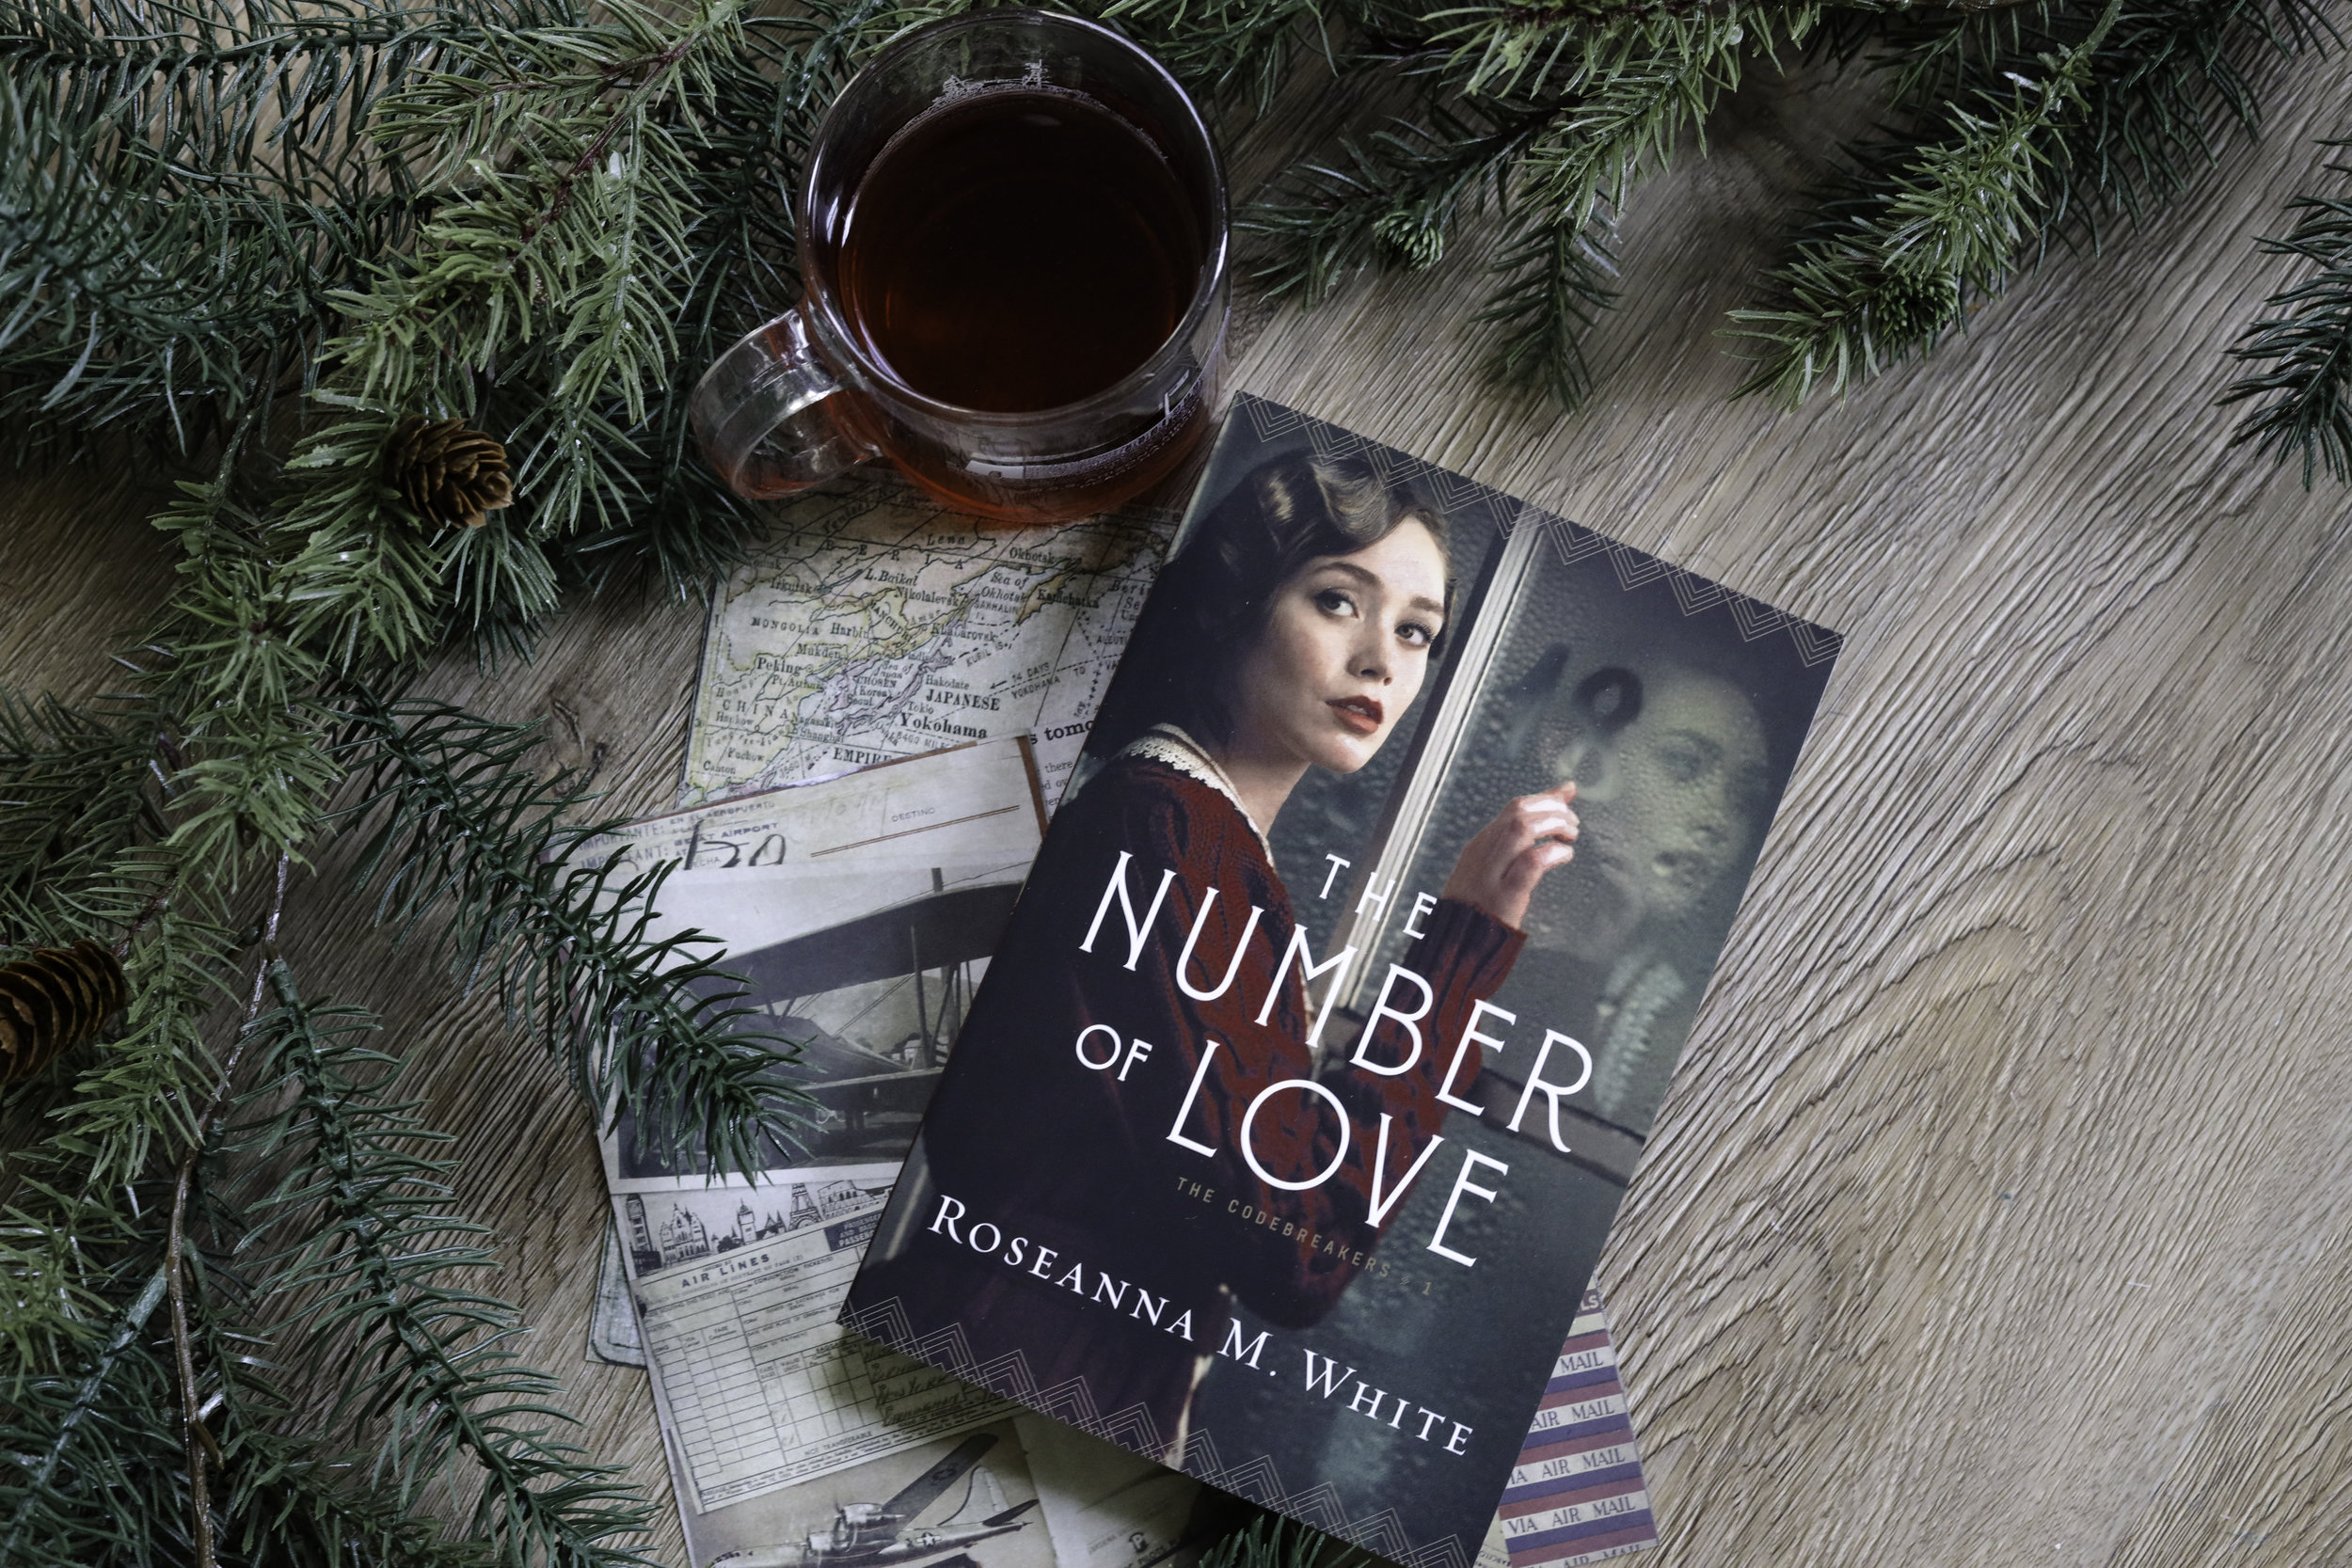 the number of love roseanna m white